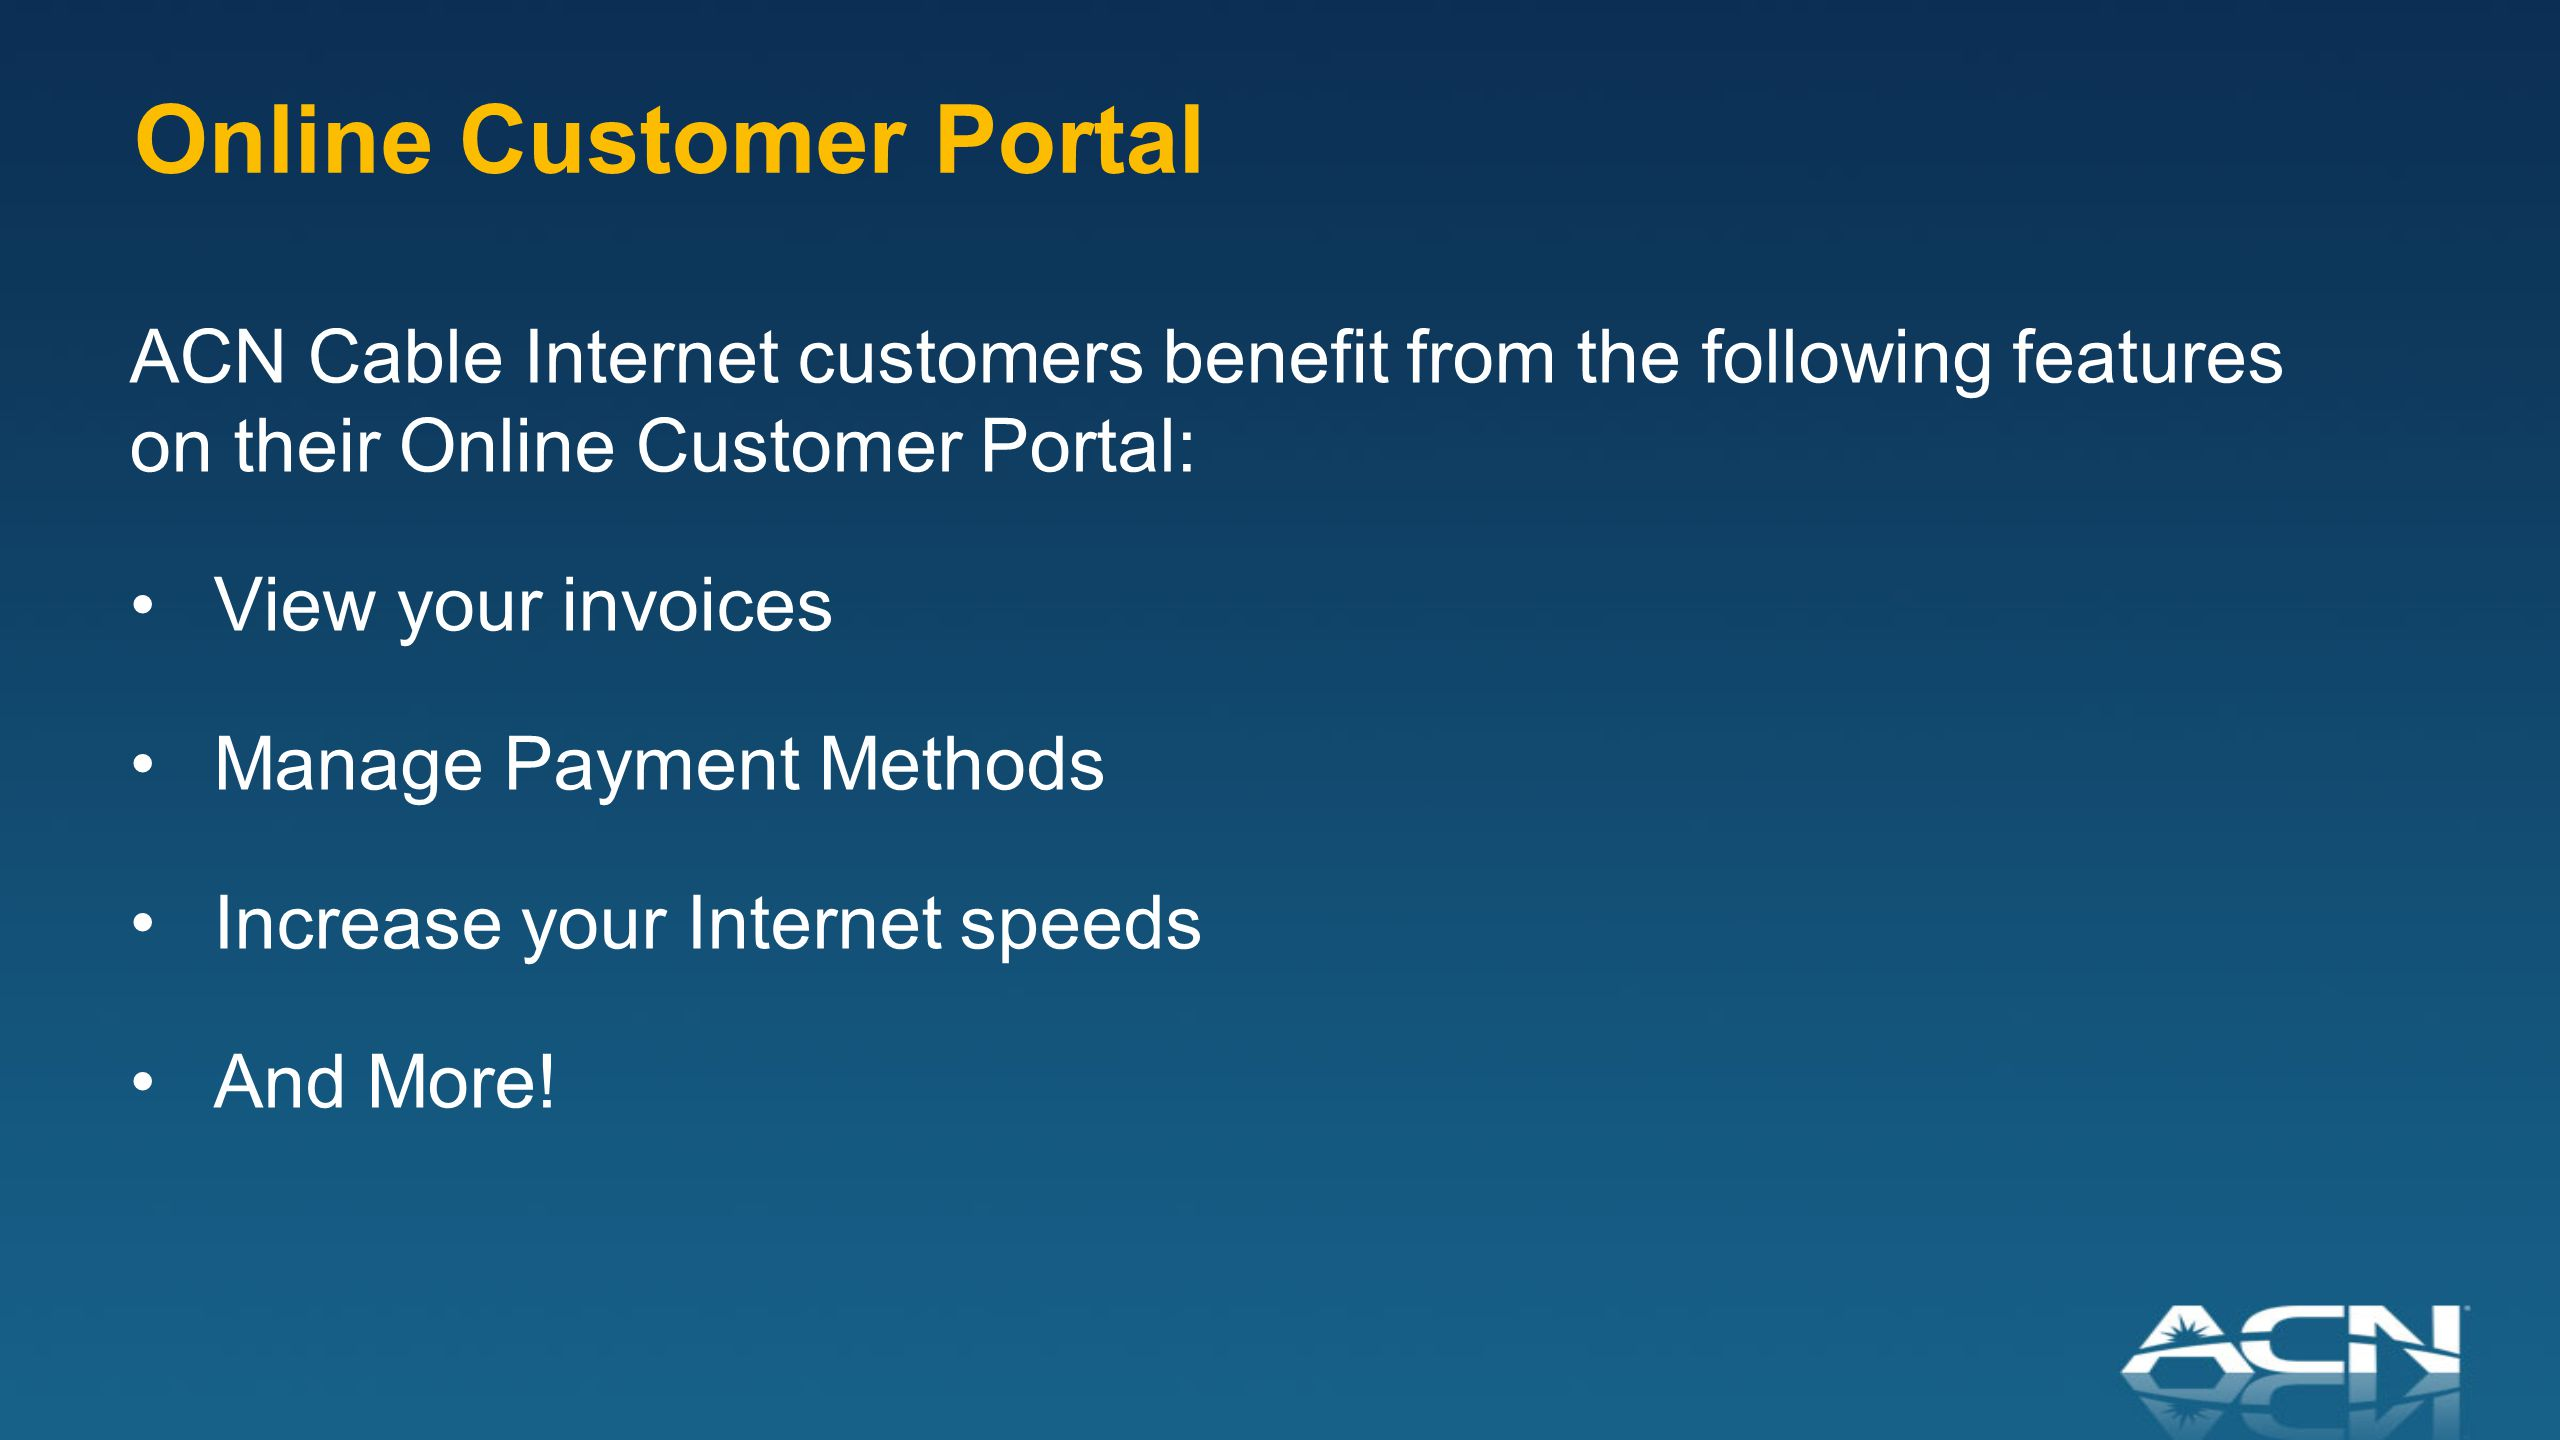 ACN Cable Internet customers benefit from the following features on their Online Customer Portal: View your invoices Manage Payment Methods Increase your Internet speeds And More.